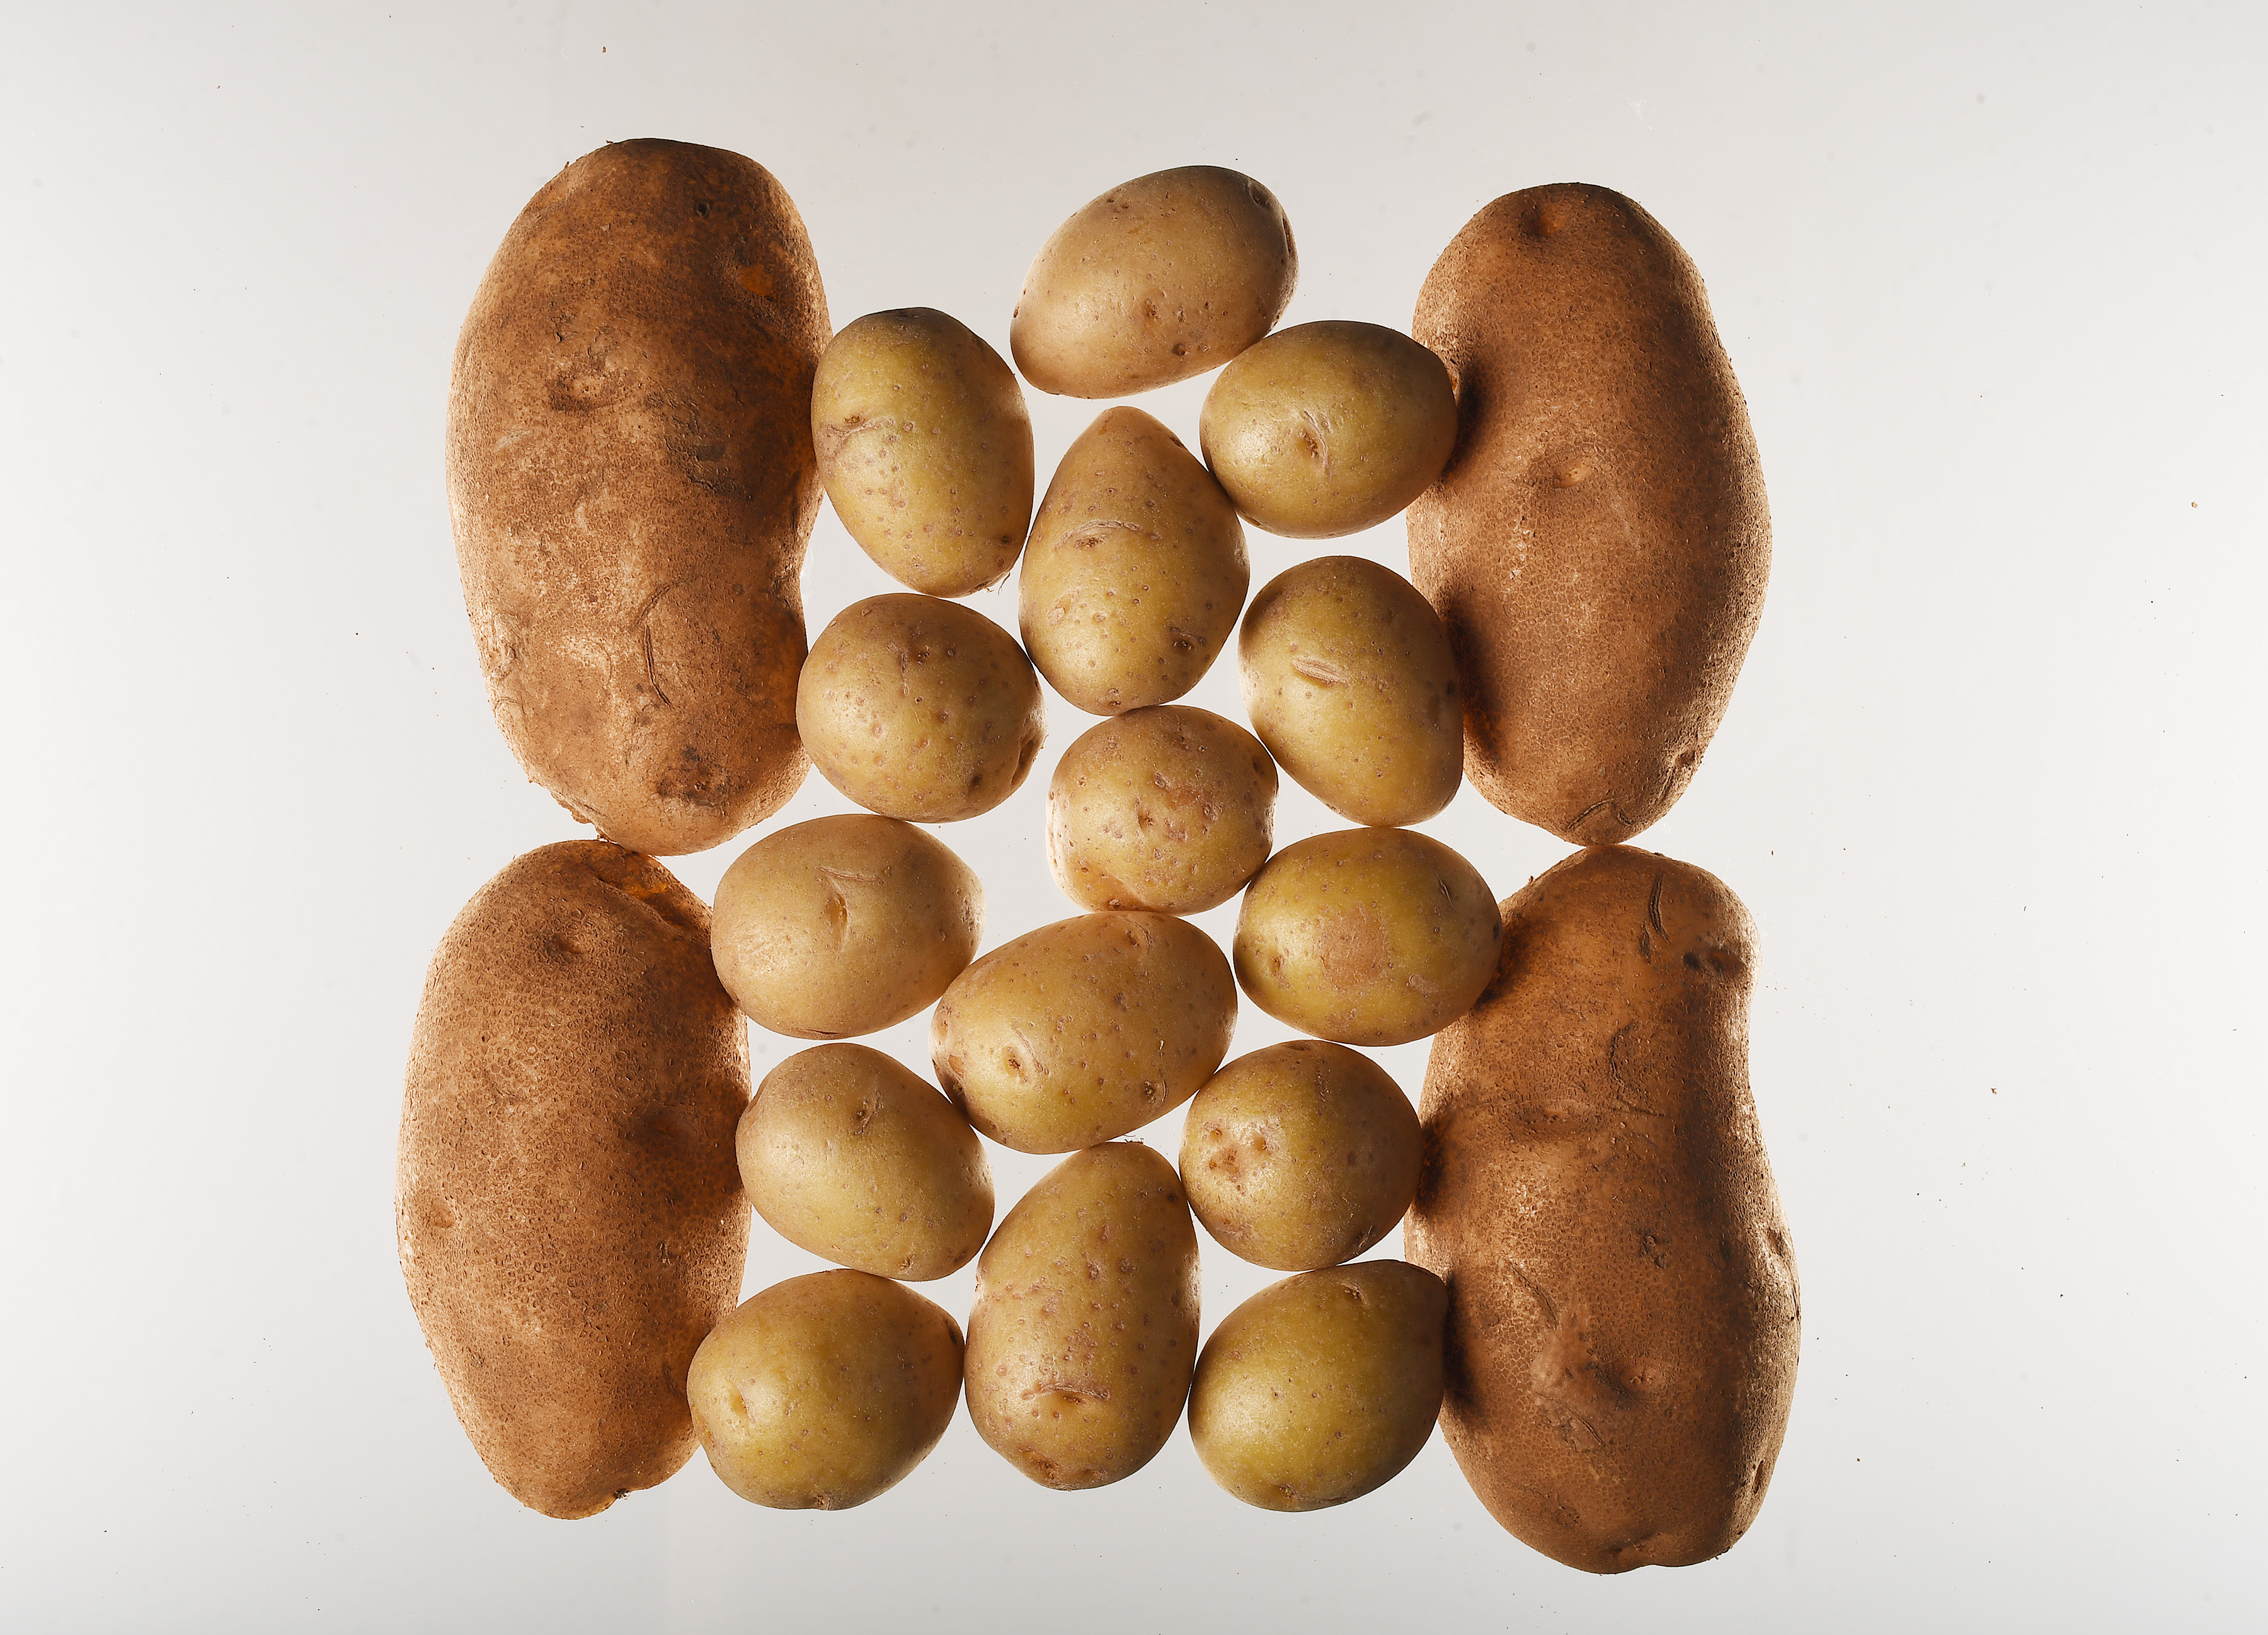 washingtonpost.com - Consumer Reports - Potatoes are actually a healthy food - without butter and other fixings